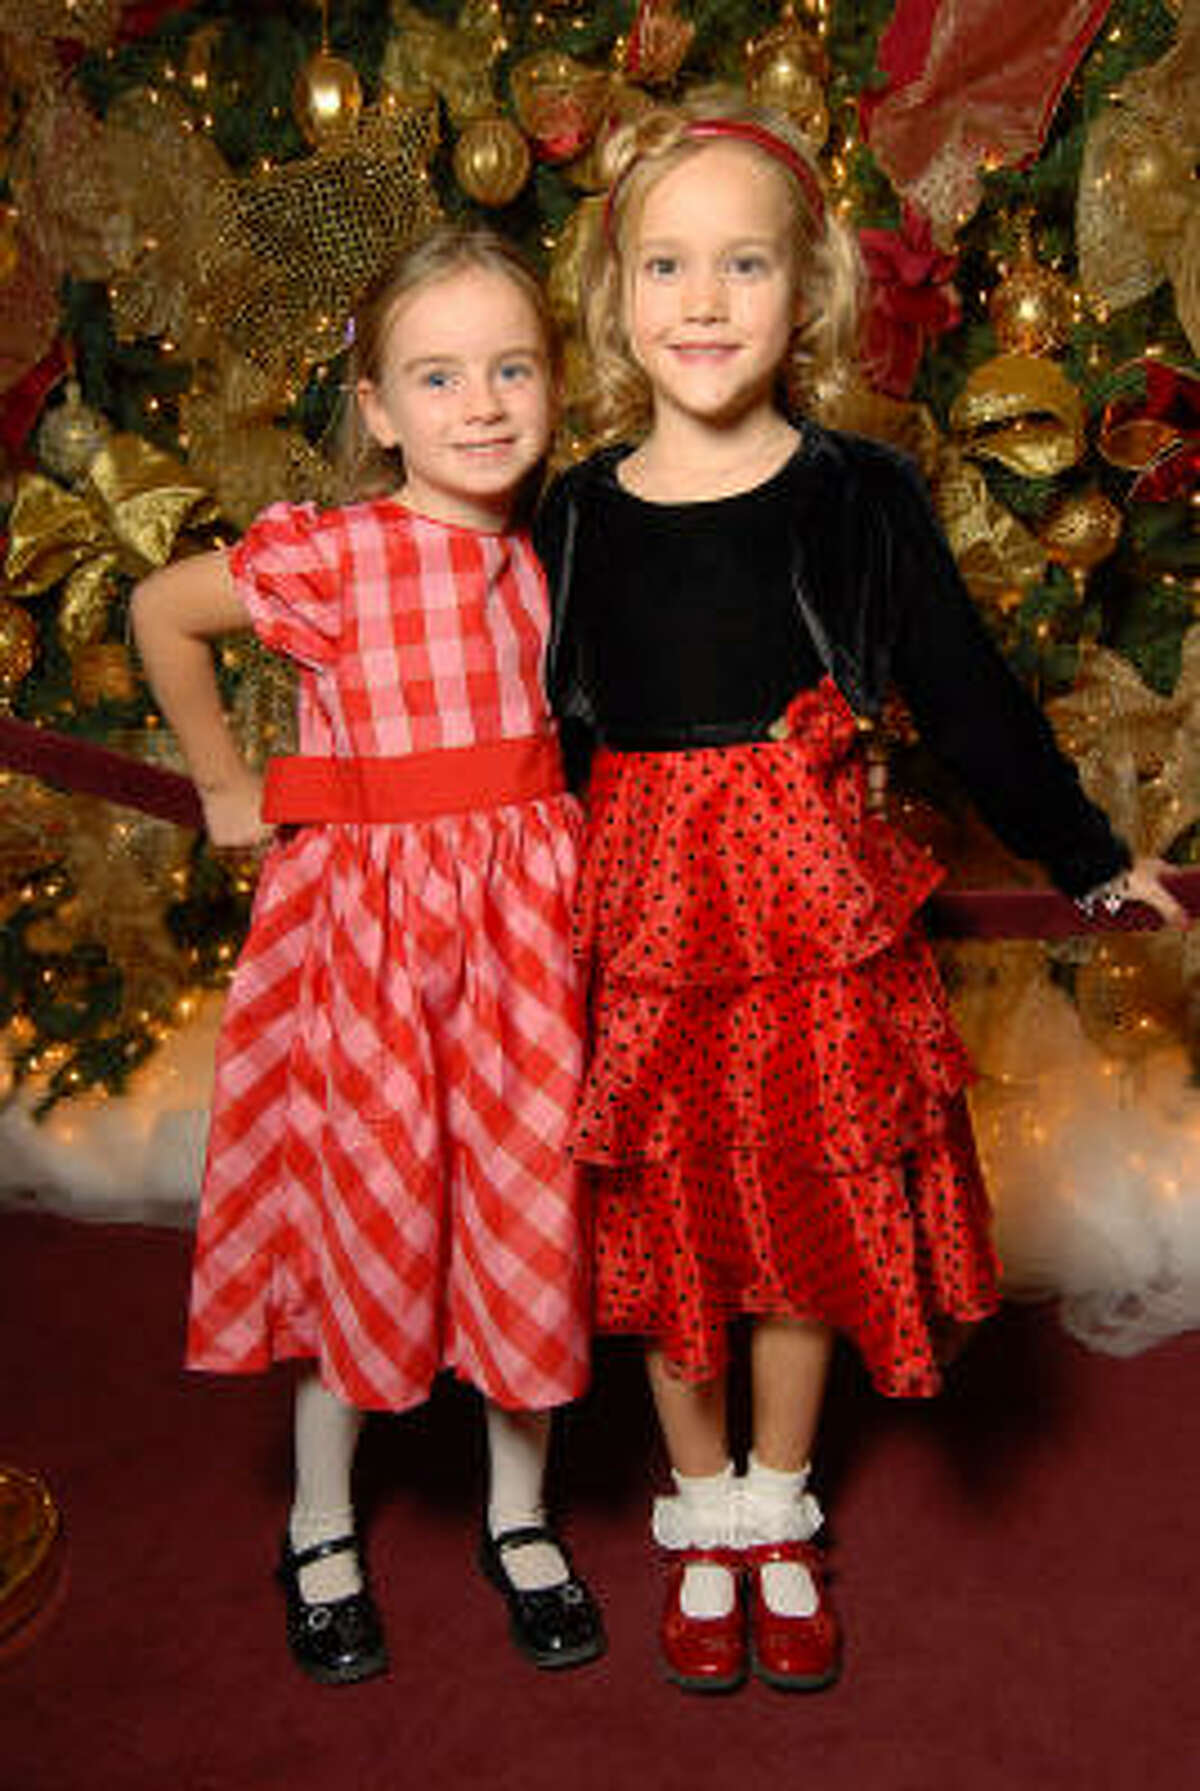 Niamh Holmes, 6, and Kyla Dickson, 6, at the opening night of The Nutcracker.